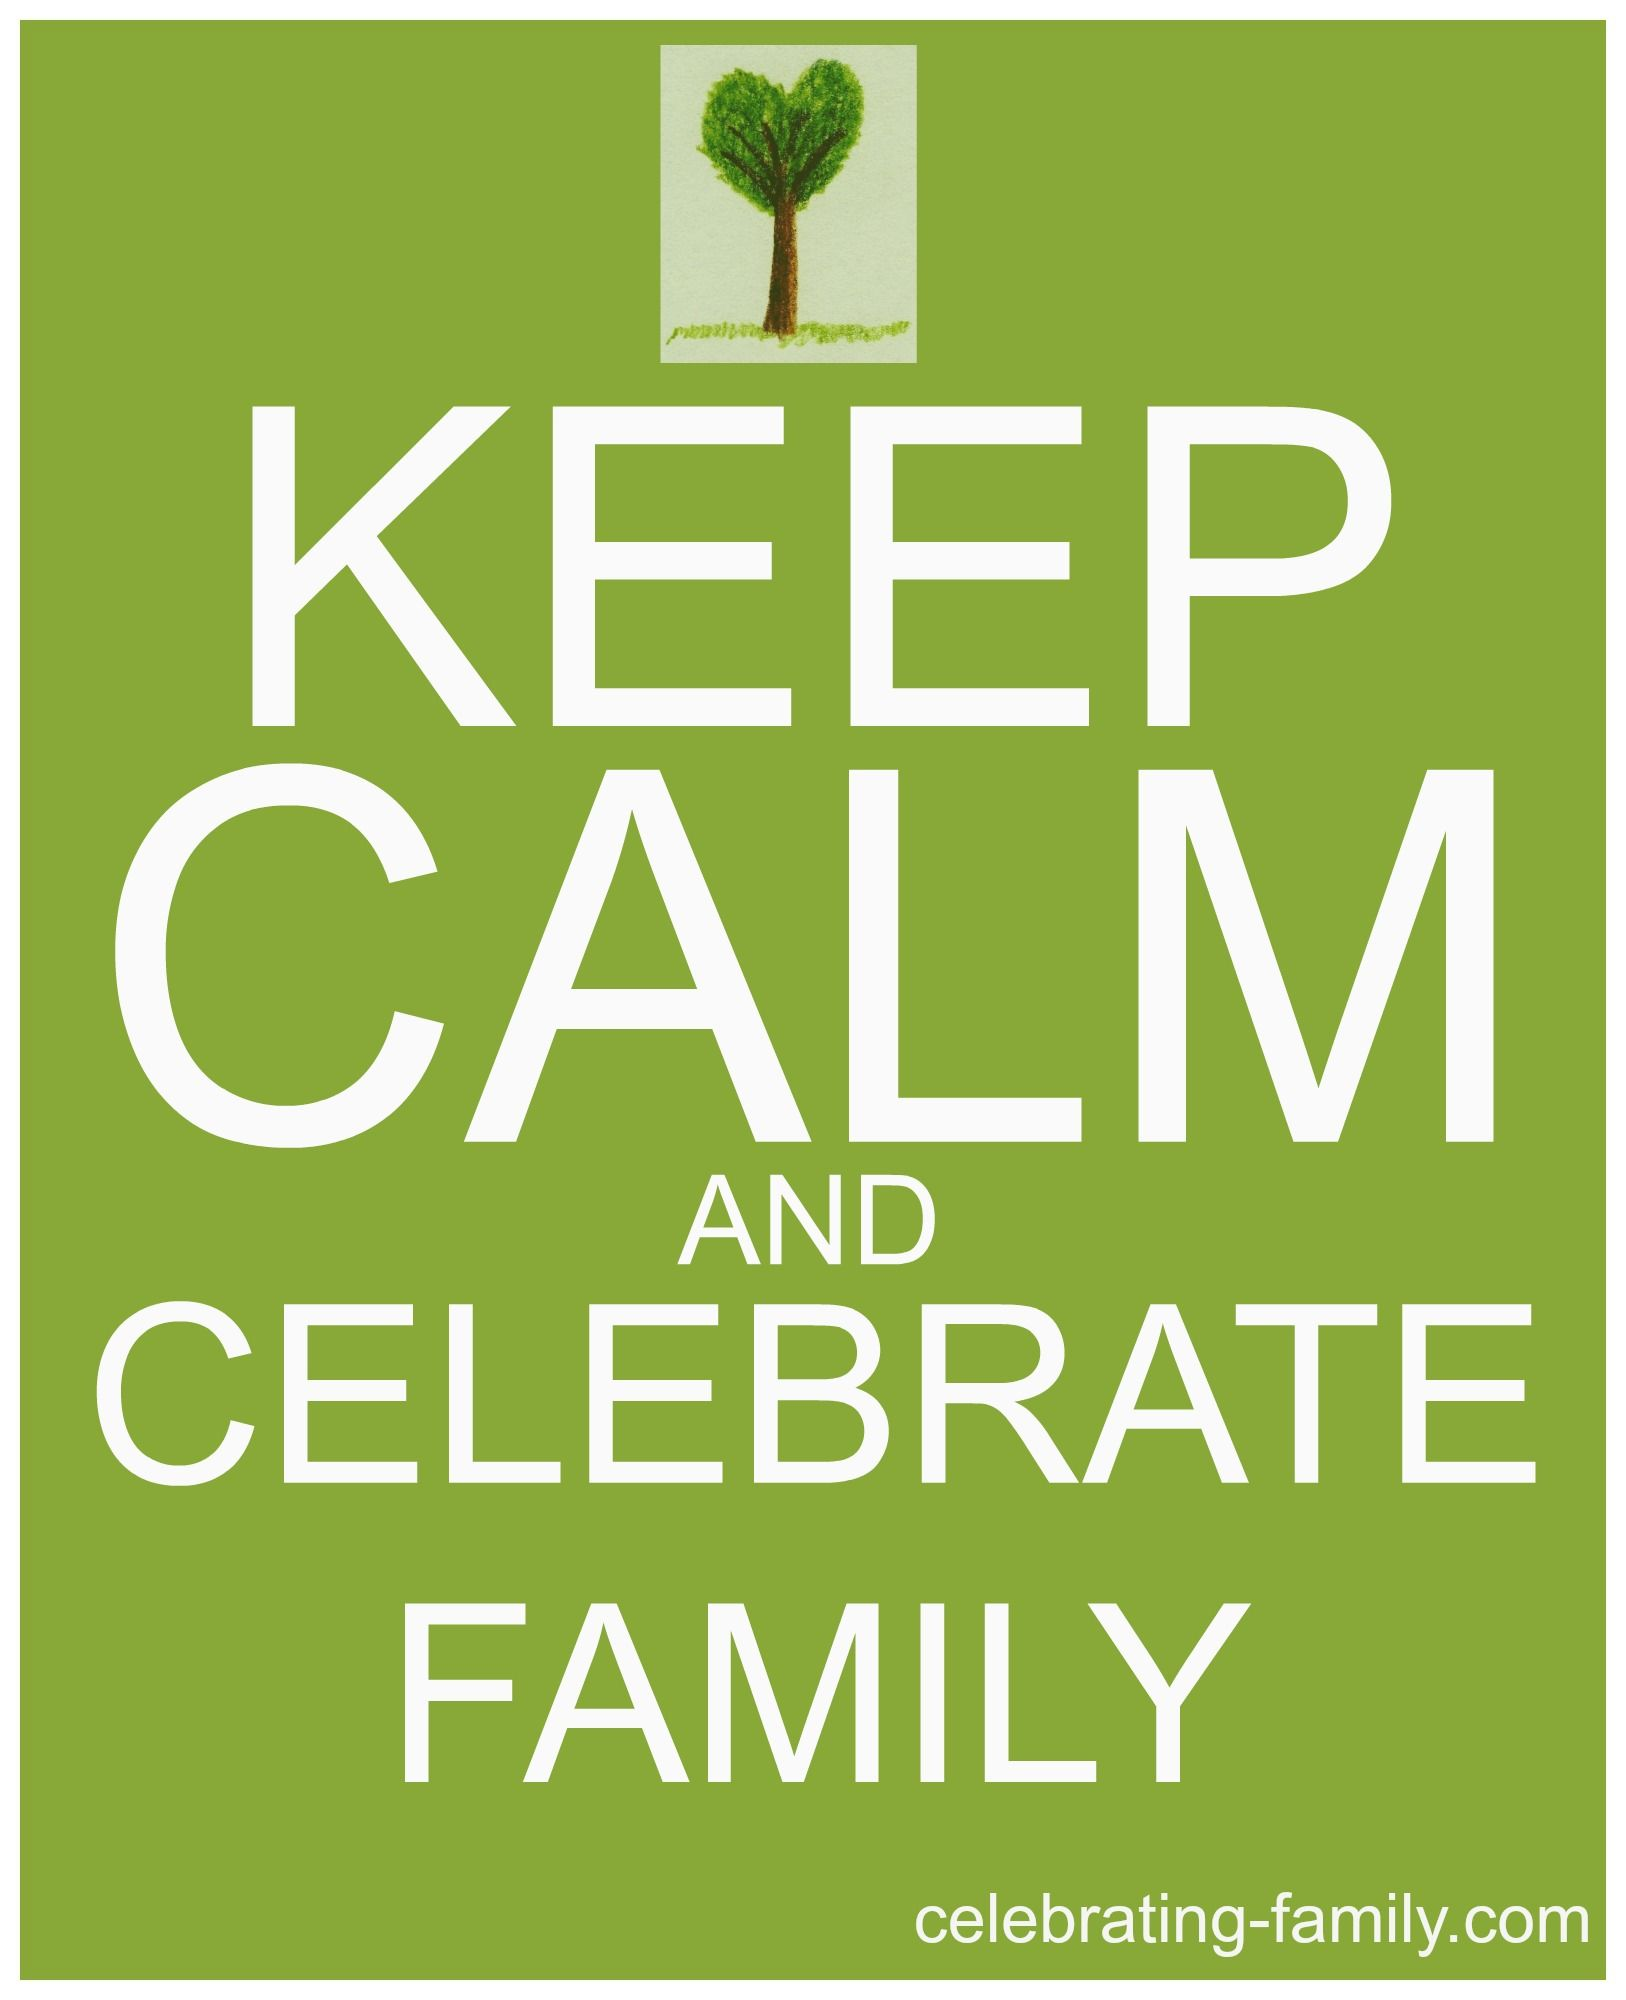 Keep Calm - Celebrating Family More